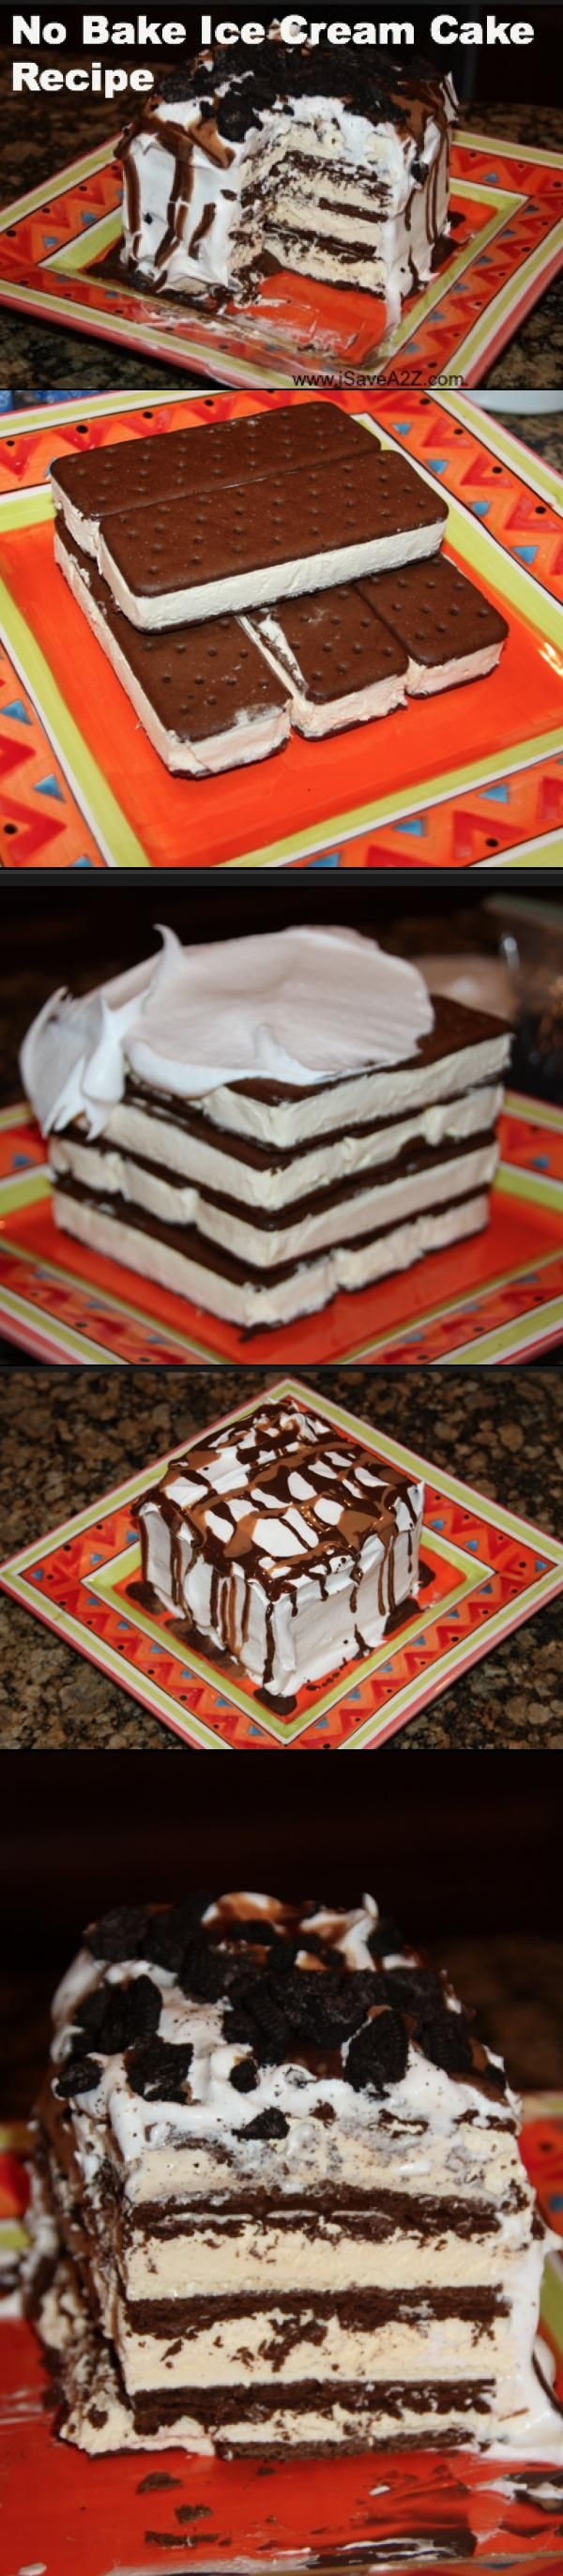 No Bake Ice Cream Cake...great easy idea